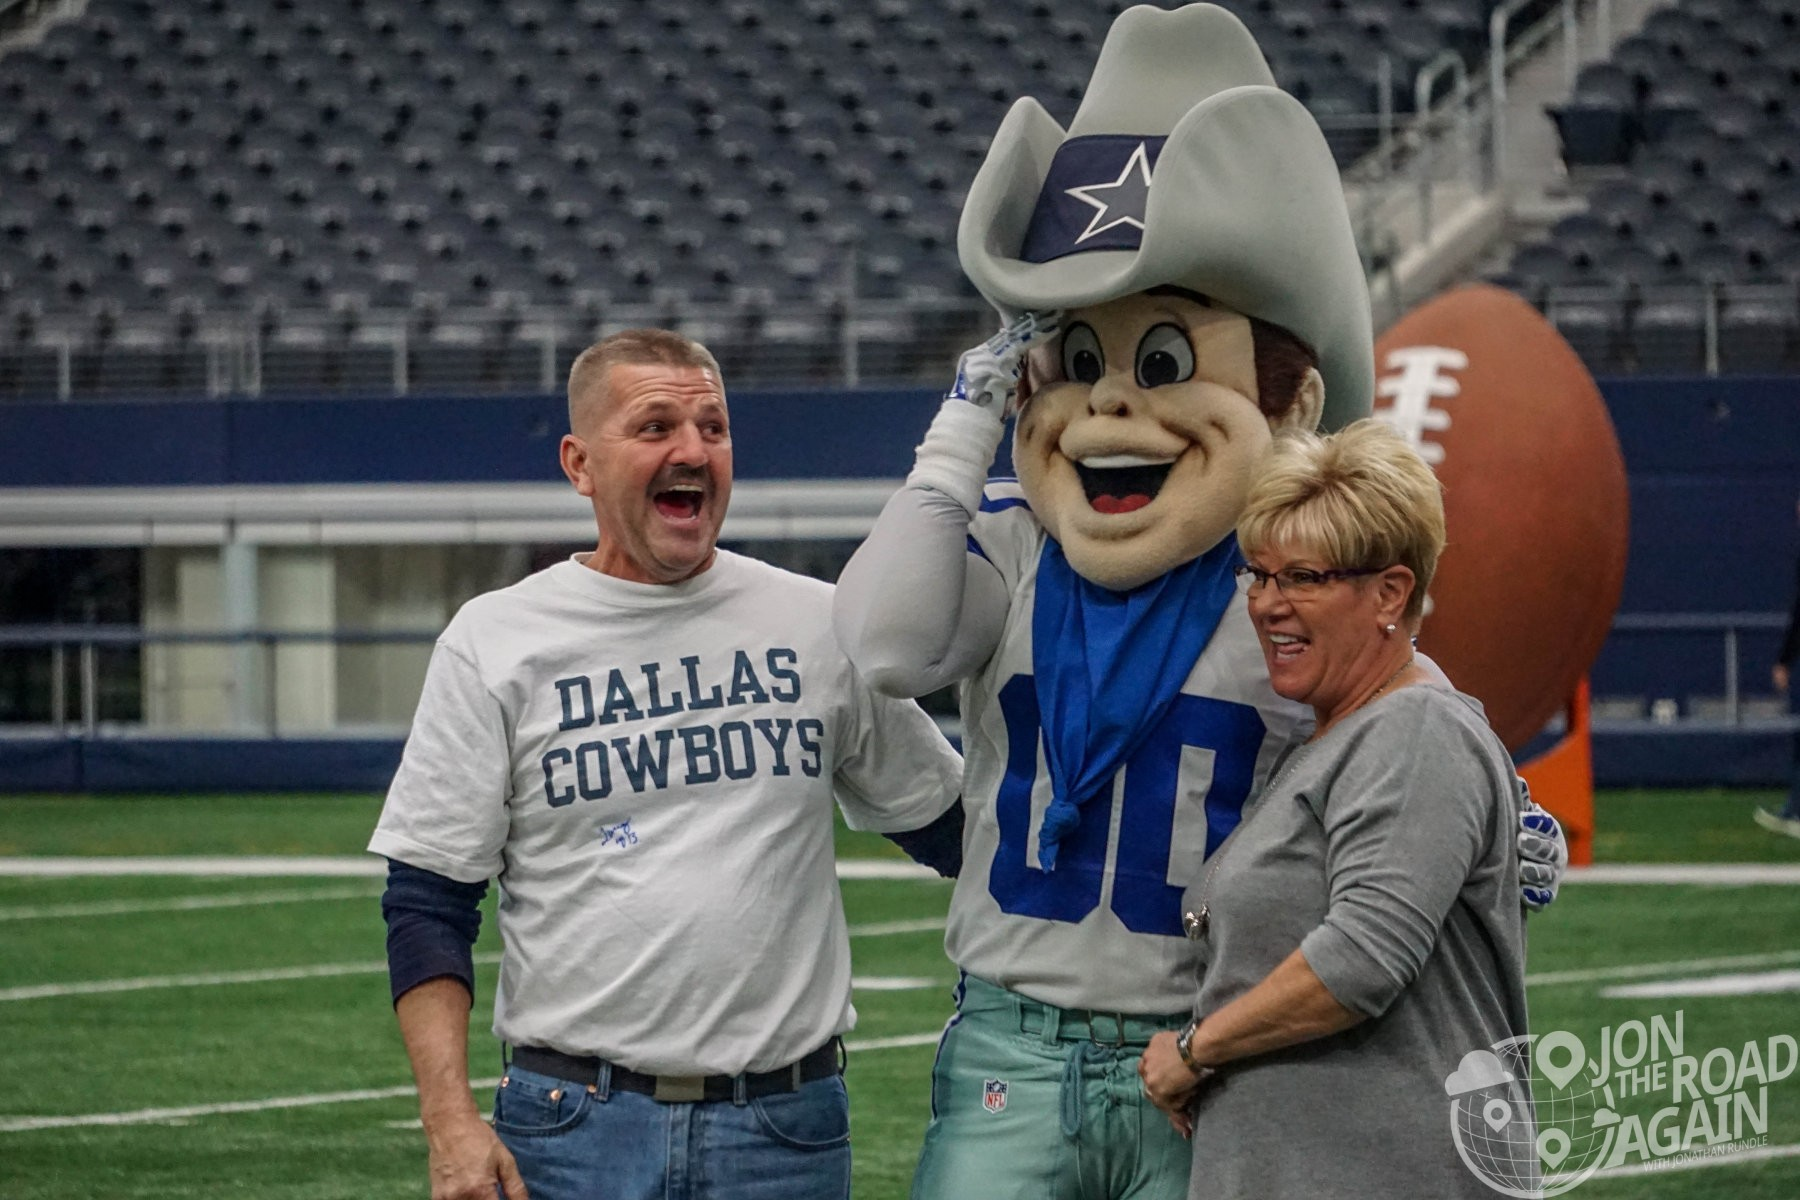 Photo with the Cowboys Mascot